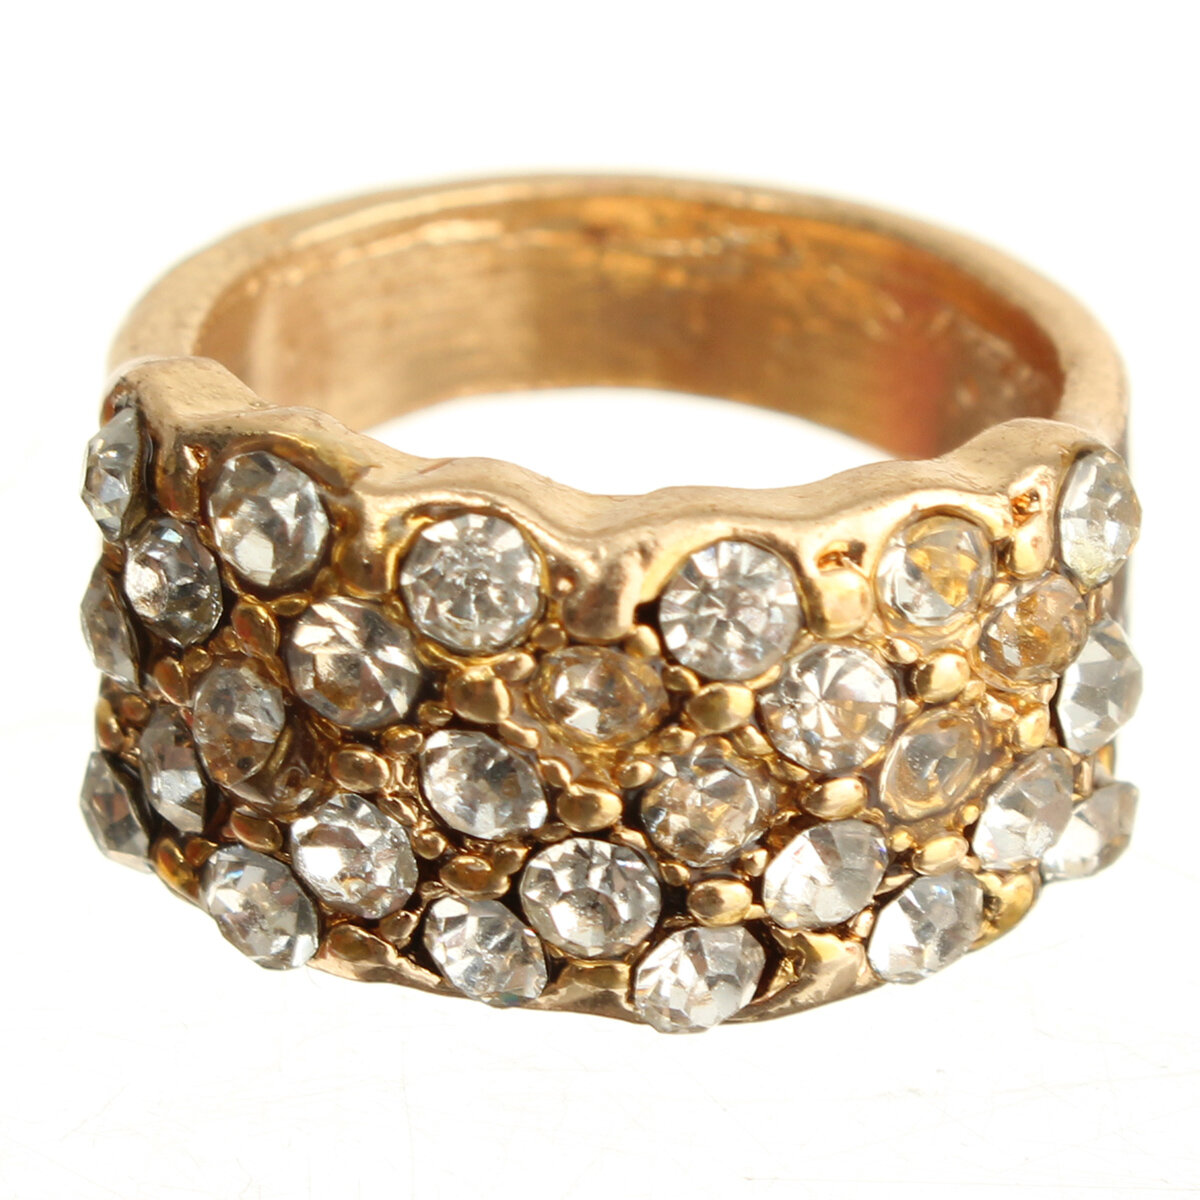 Rhinestone Crystal Stainless Steel Wide Band Ring